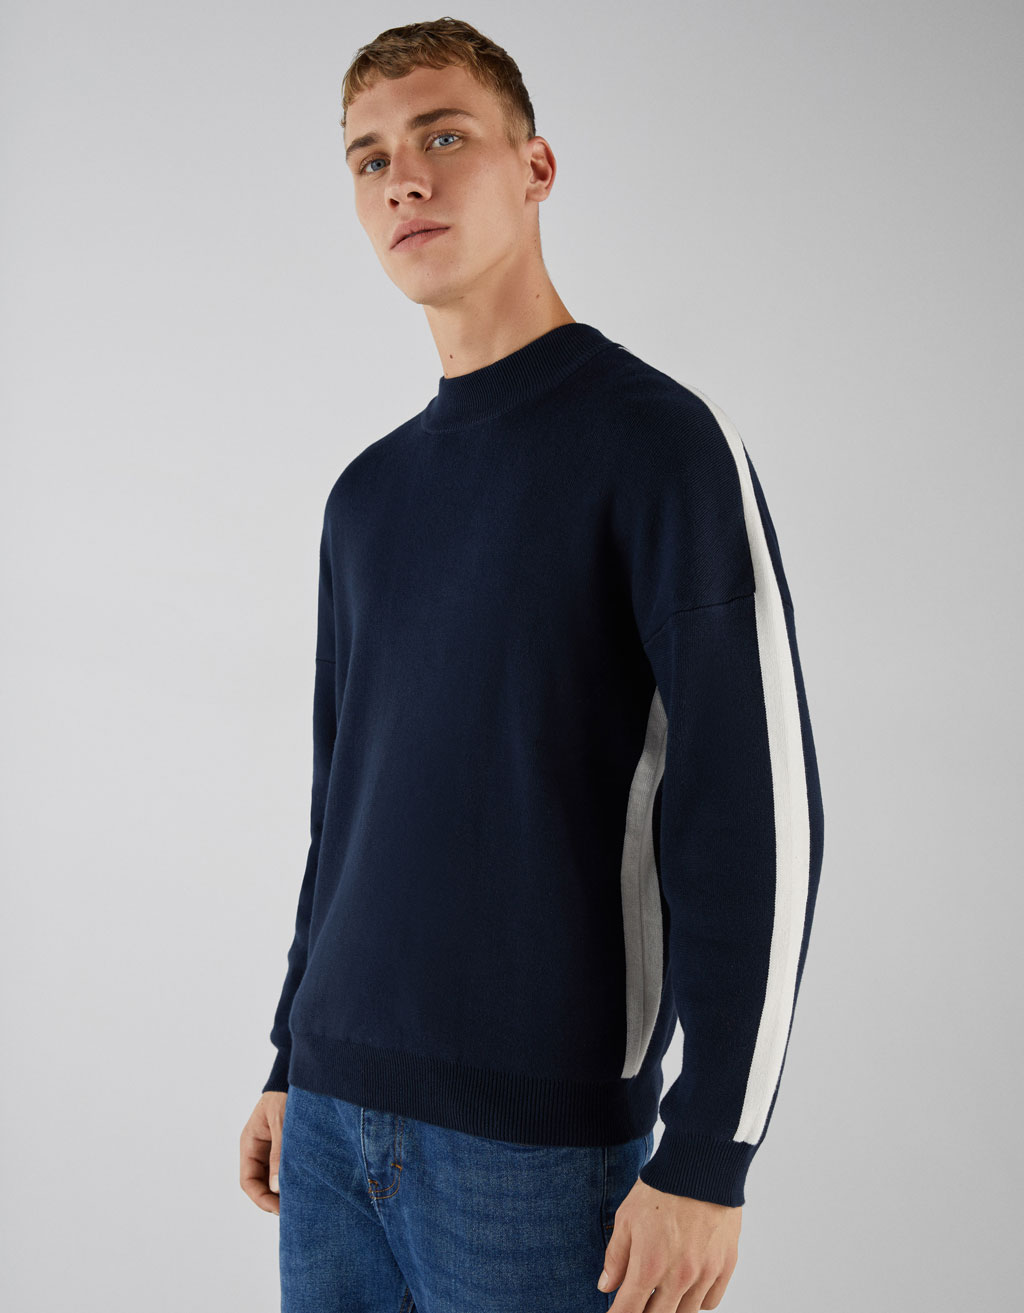 Sweater with side stripes